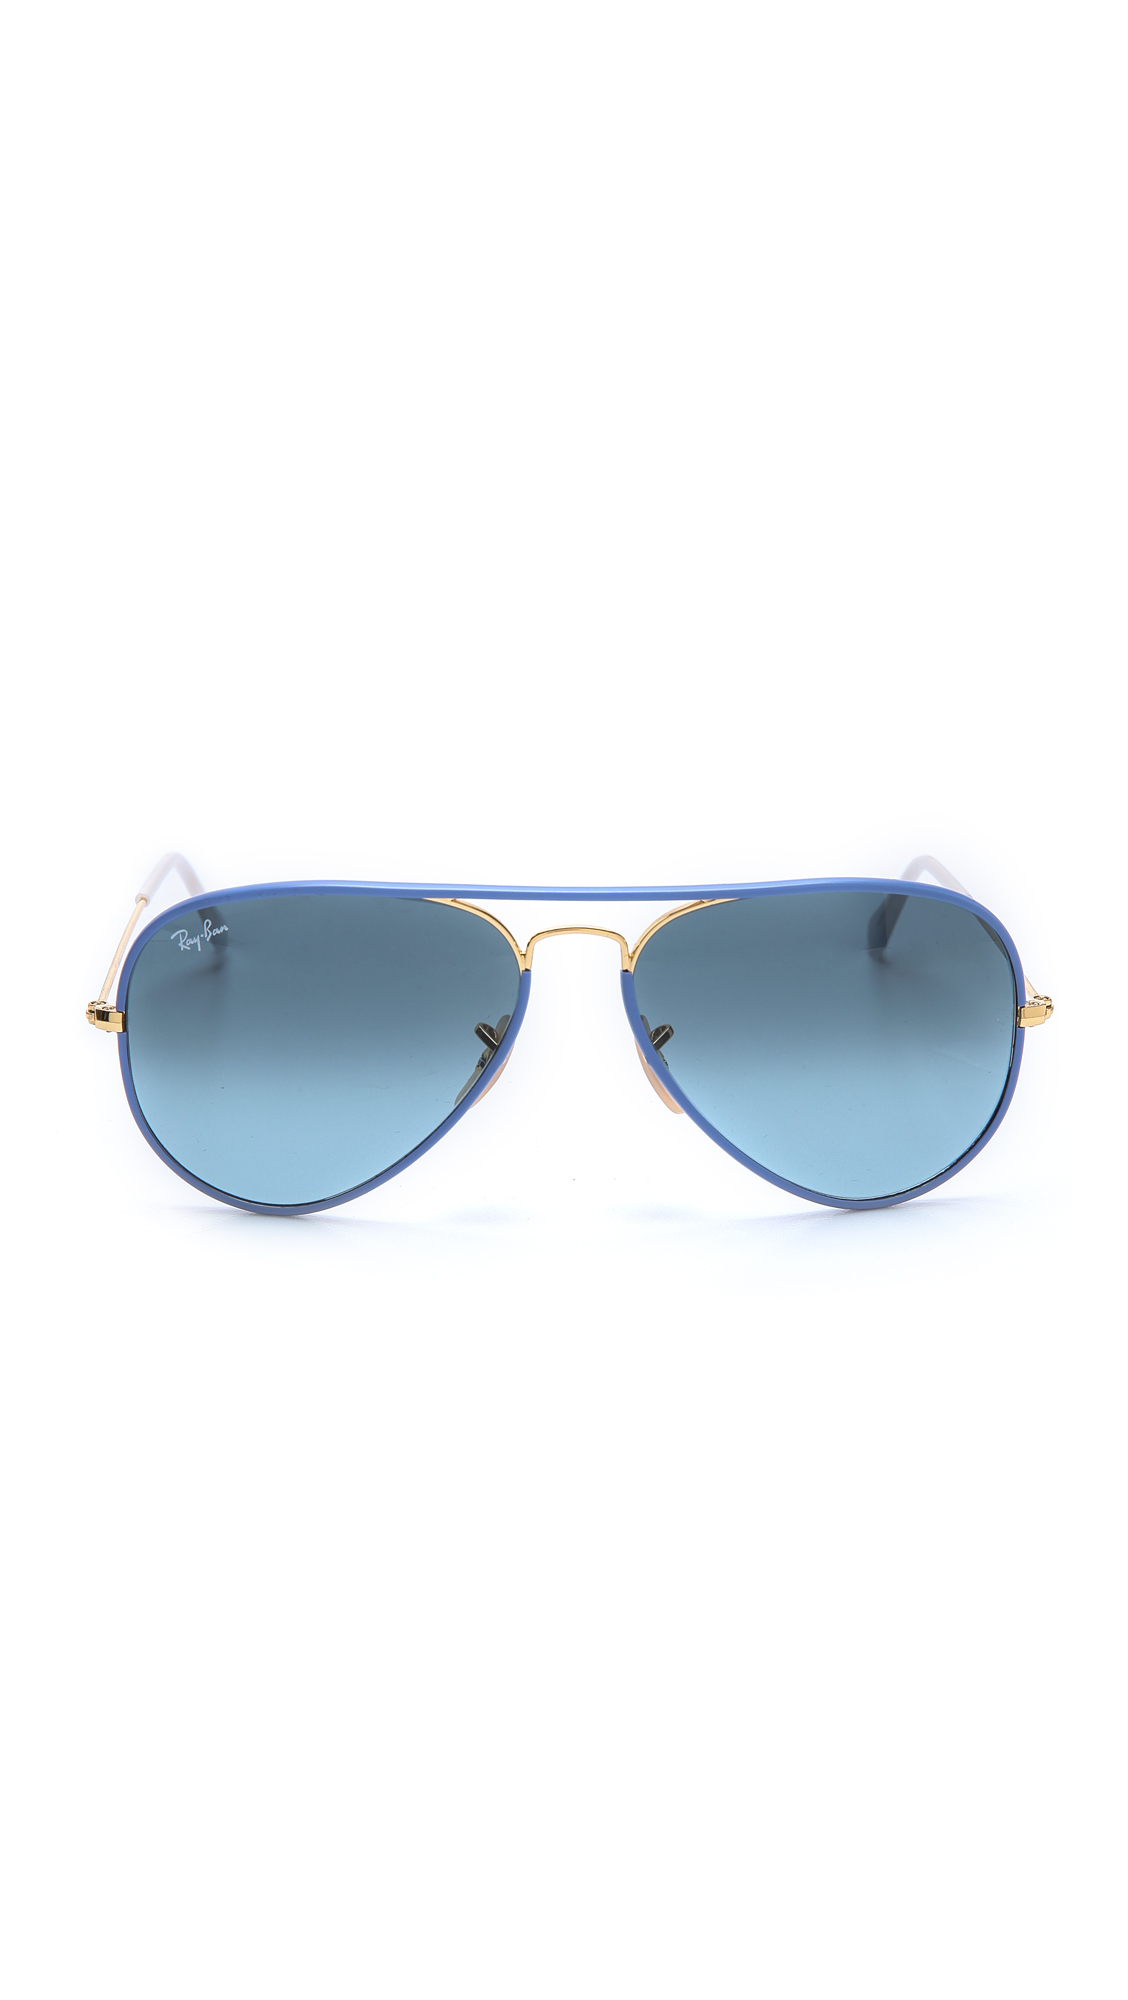 ray ban aviator lente azul degrade